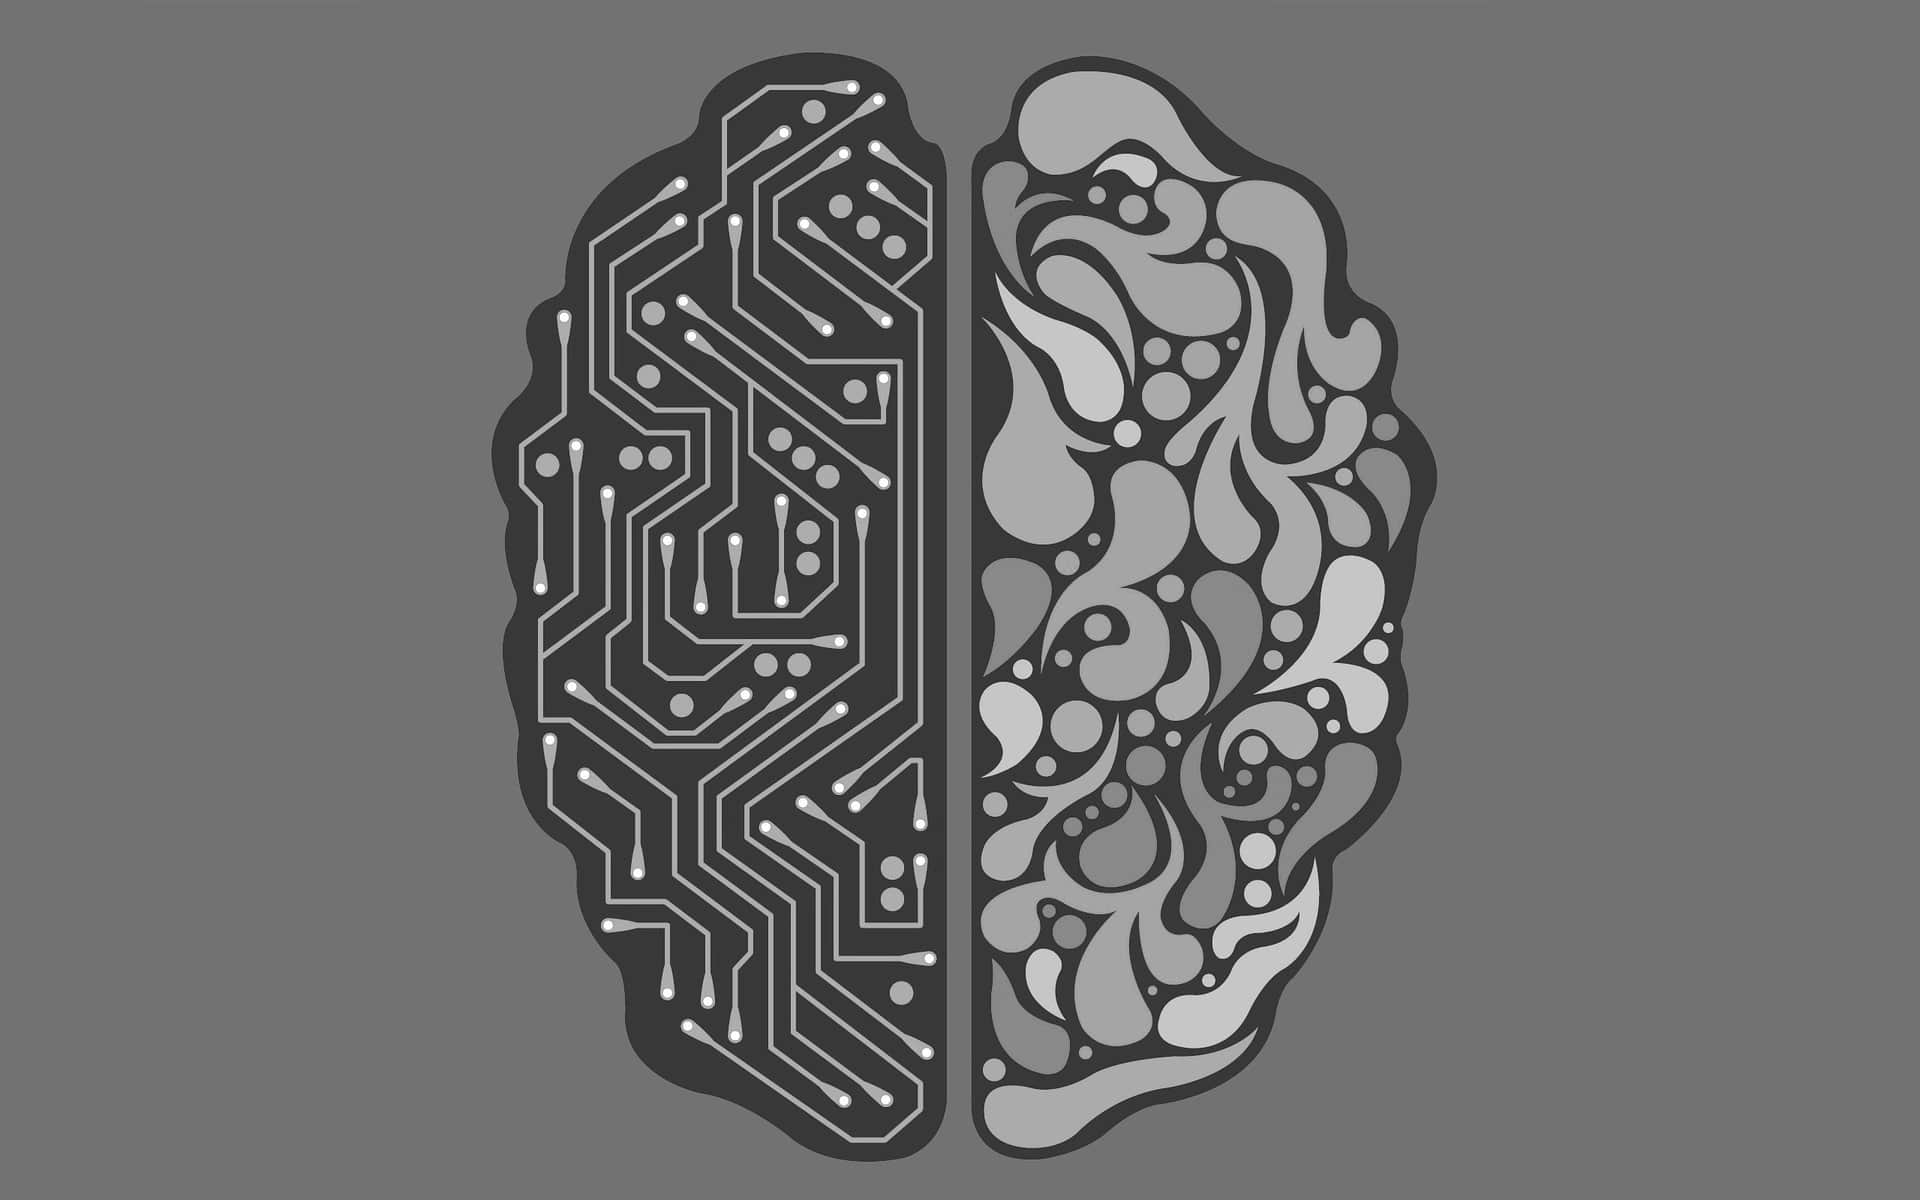 Neural Networks - Machine learning the next big thing | UpGrad Blog